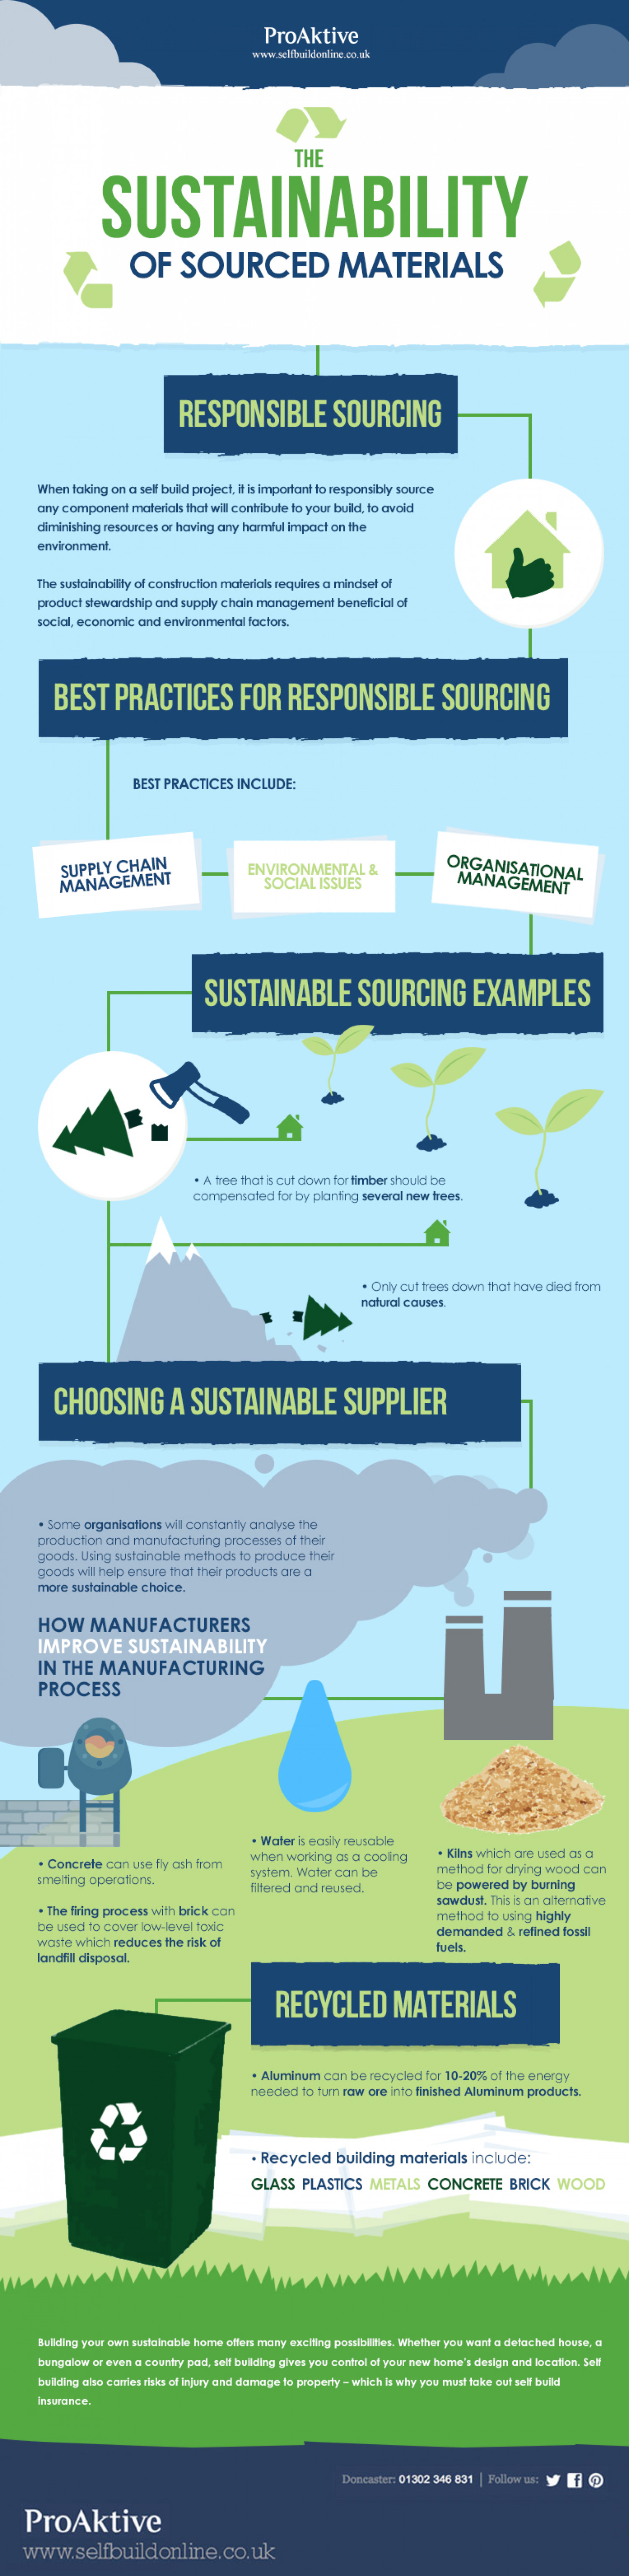 The Sustainability of Sourced Materials Infographic